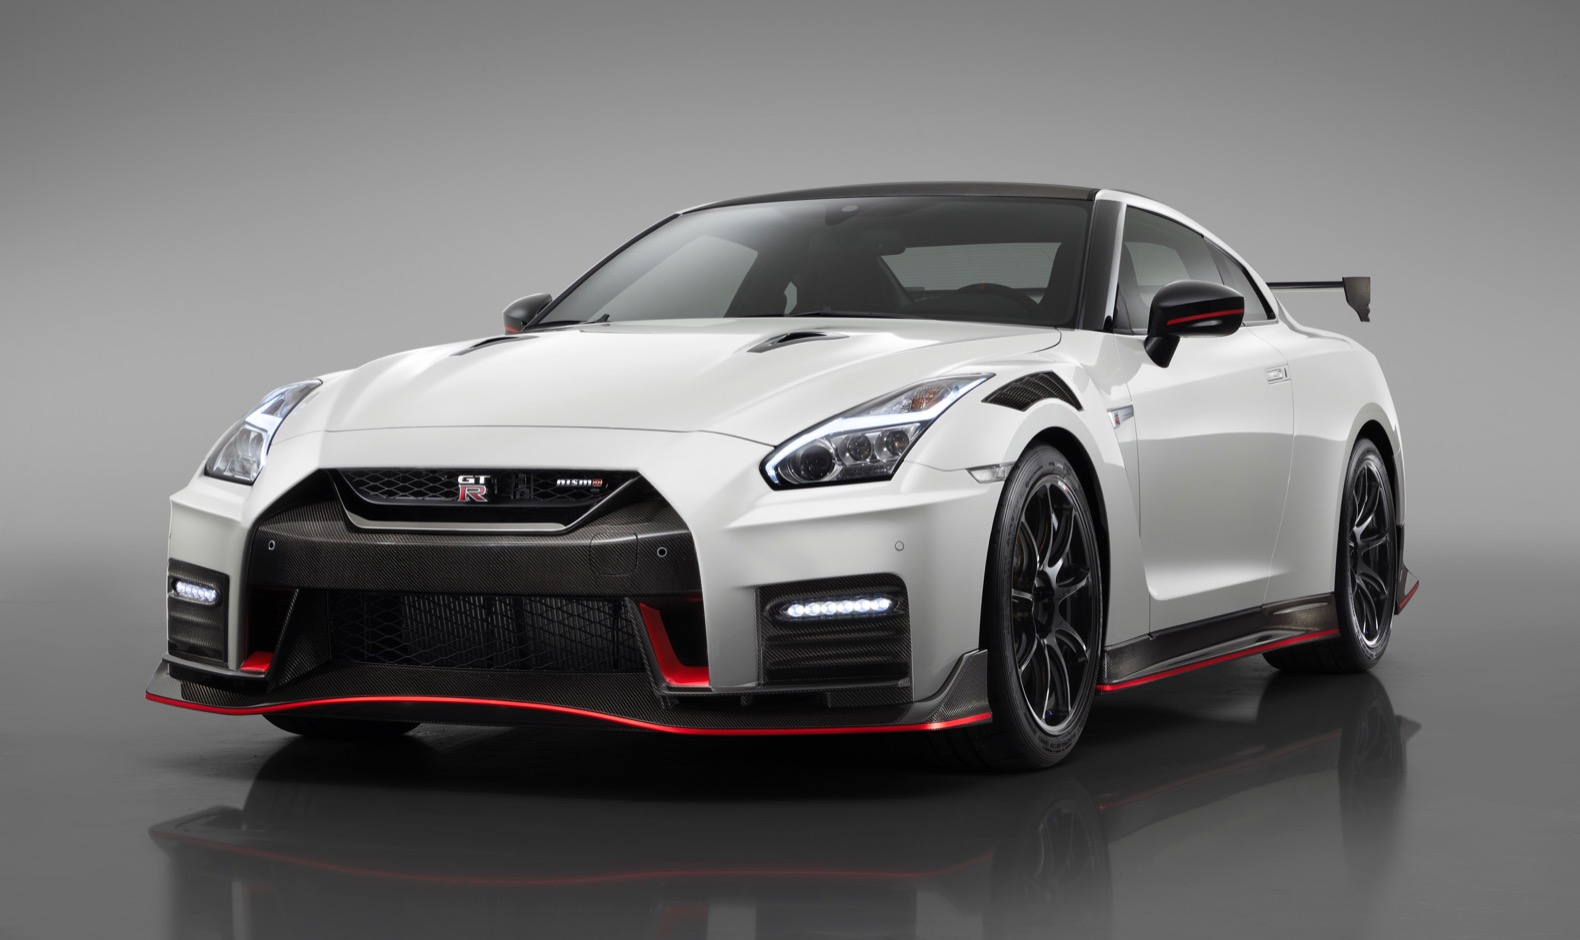 2020 Nissan GT-R Nismo gets lots of carbon fiber | The ...